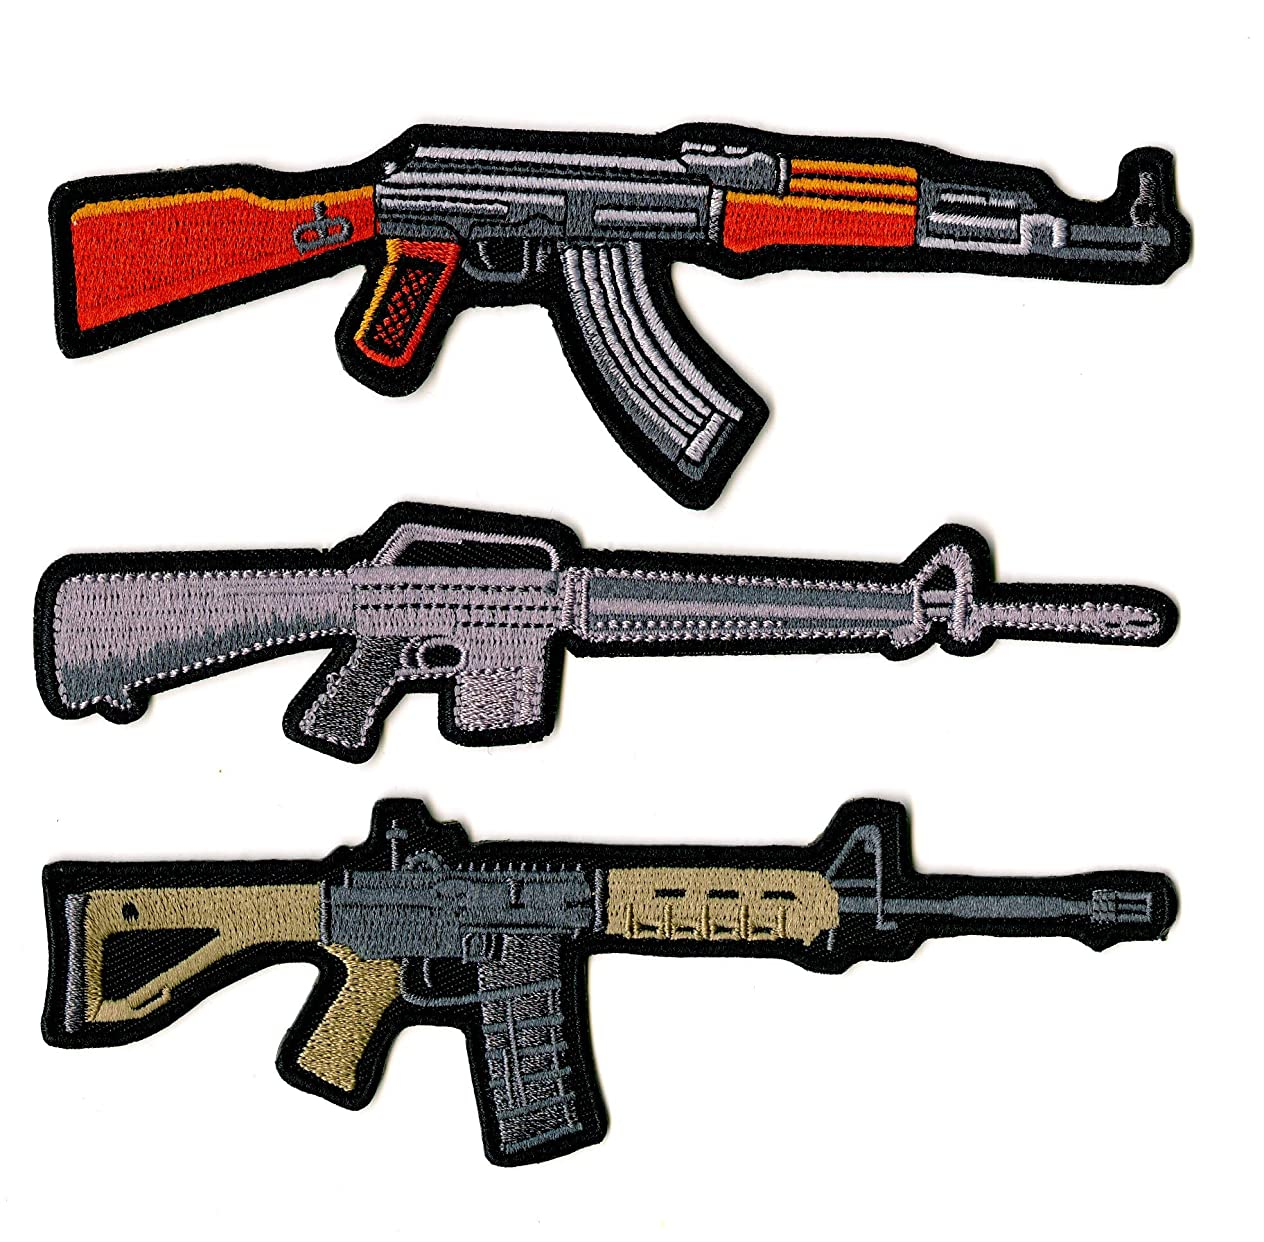 Assault Rifles Guns Military Patches   Embroidered Patch 3 pc. Set (4.5